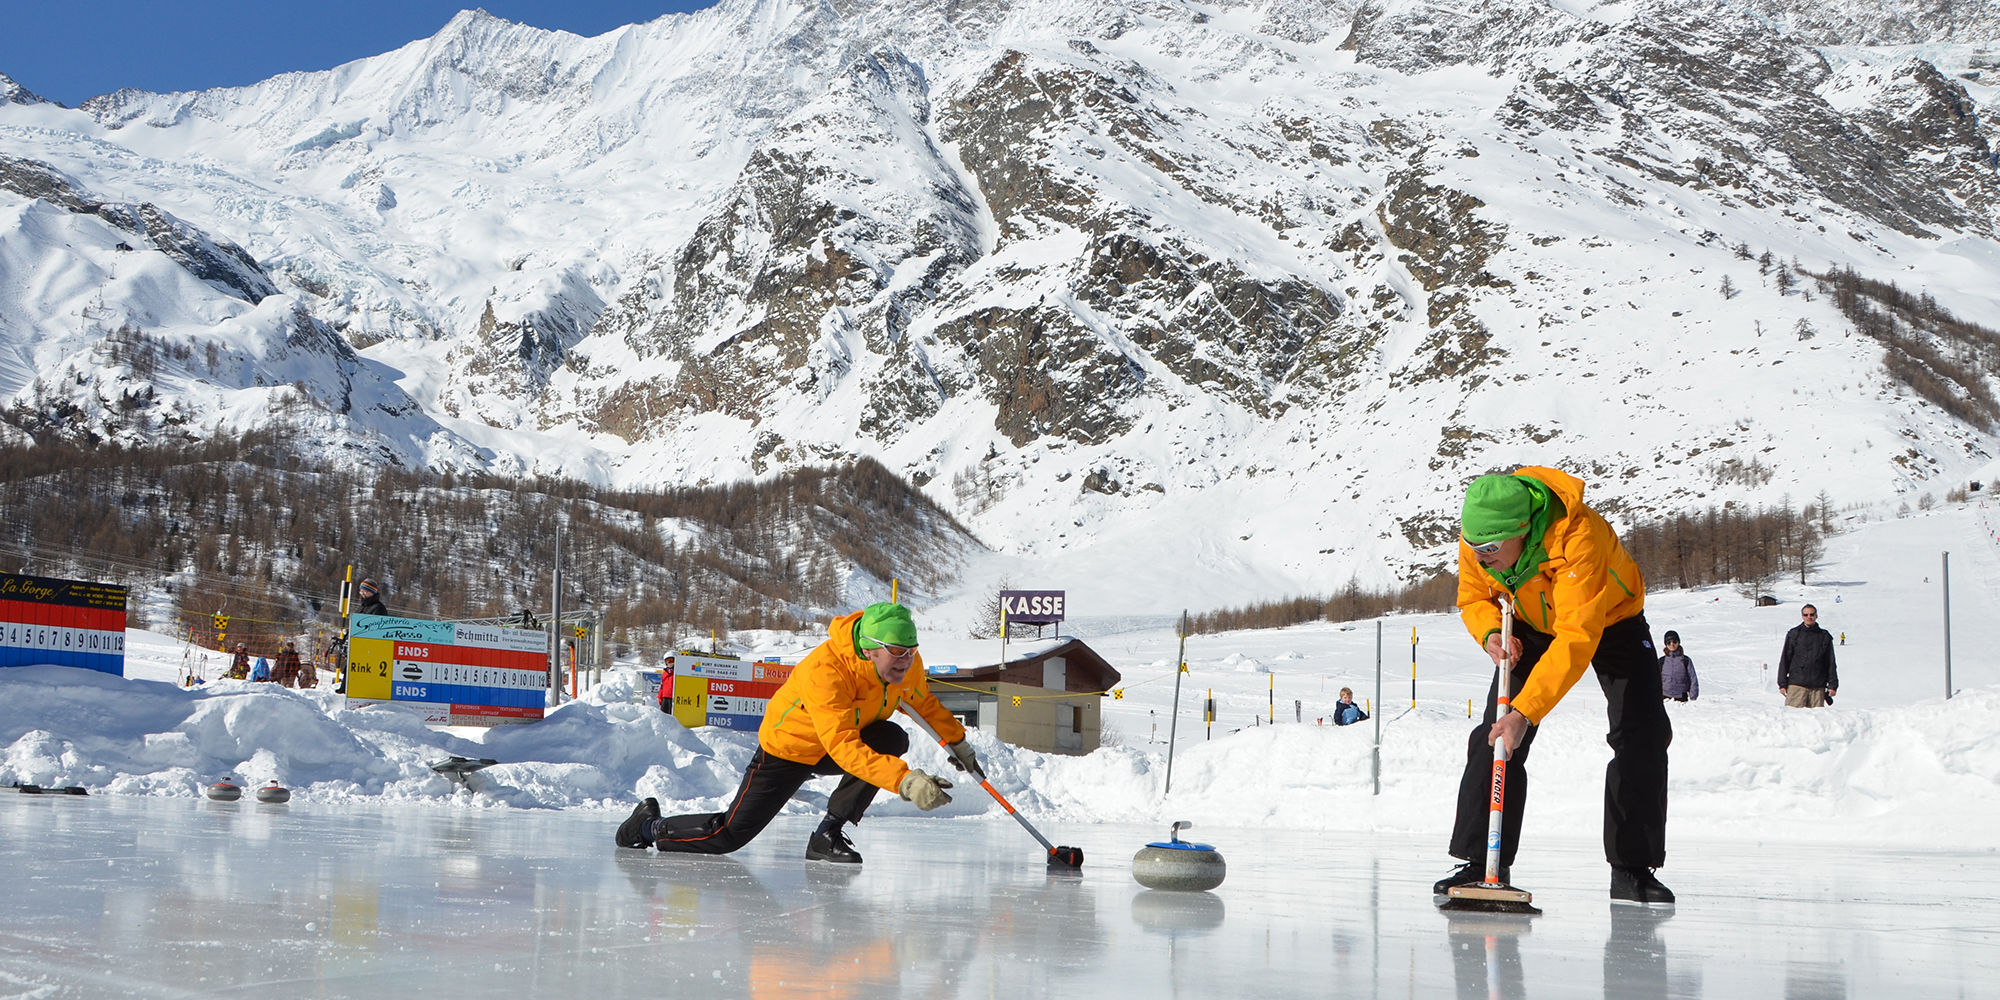 Wintersport in der Freien Ferienrepublik Saas-Fee